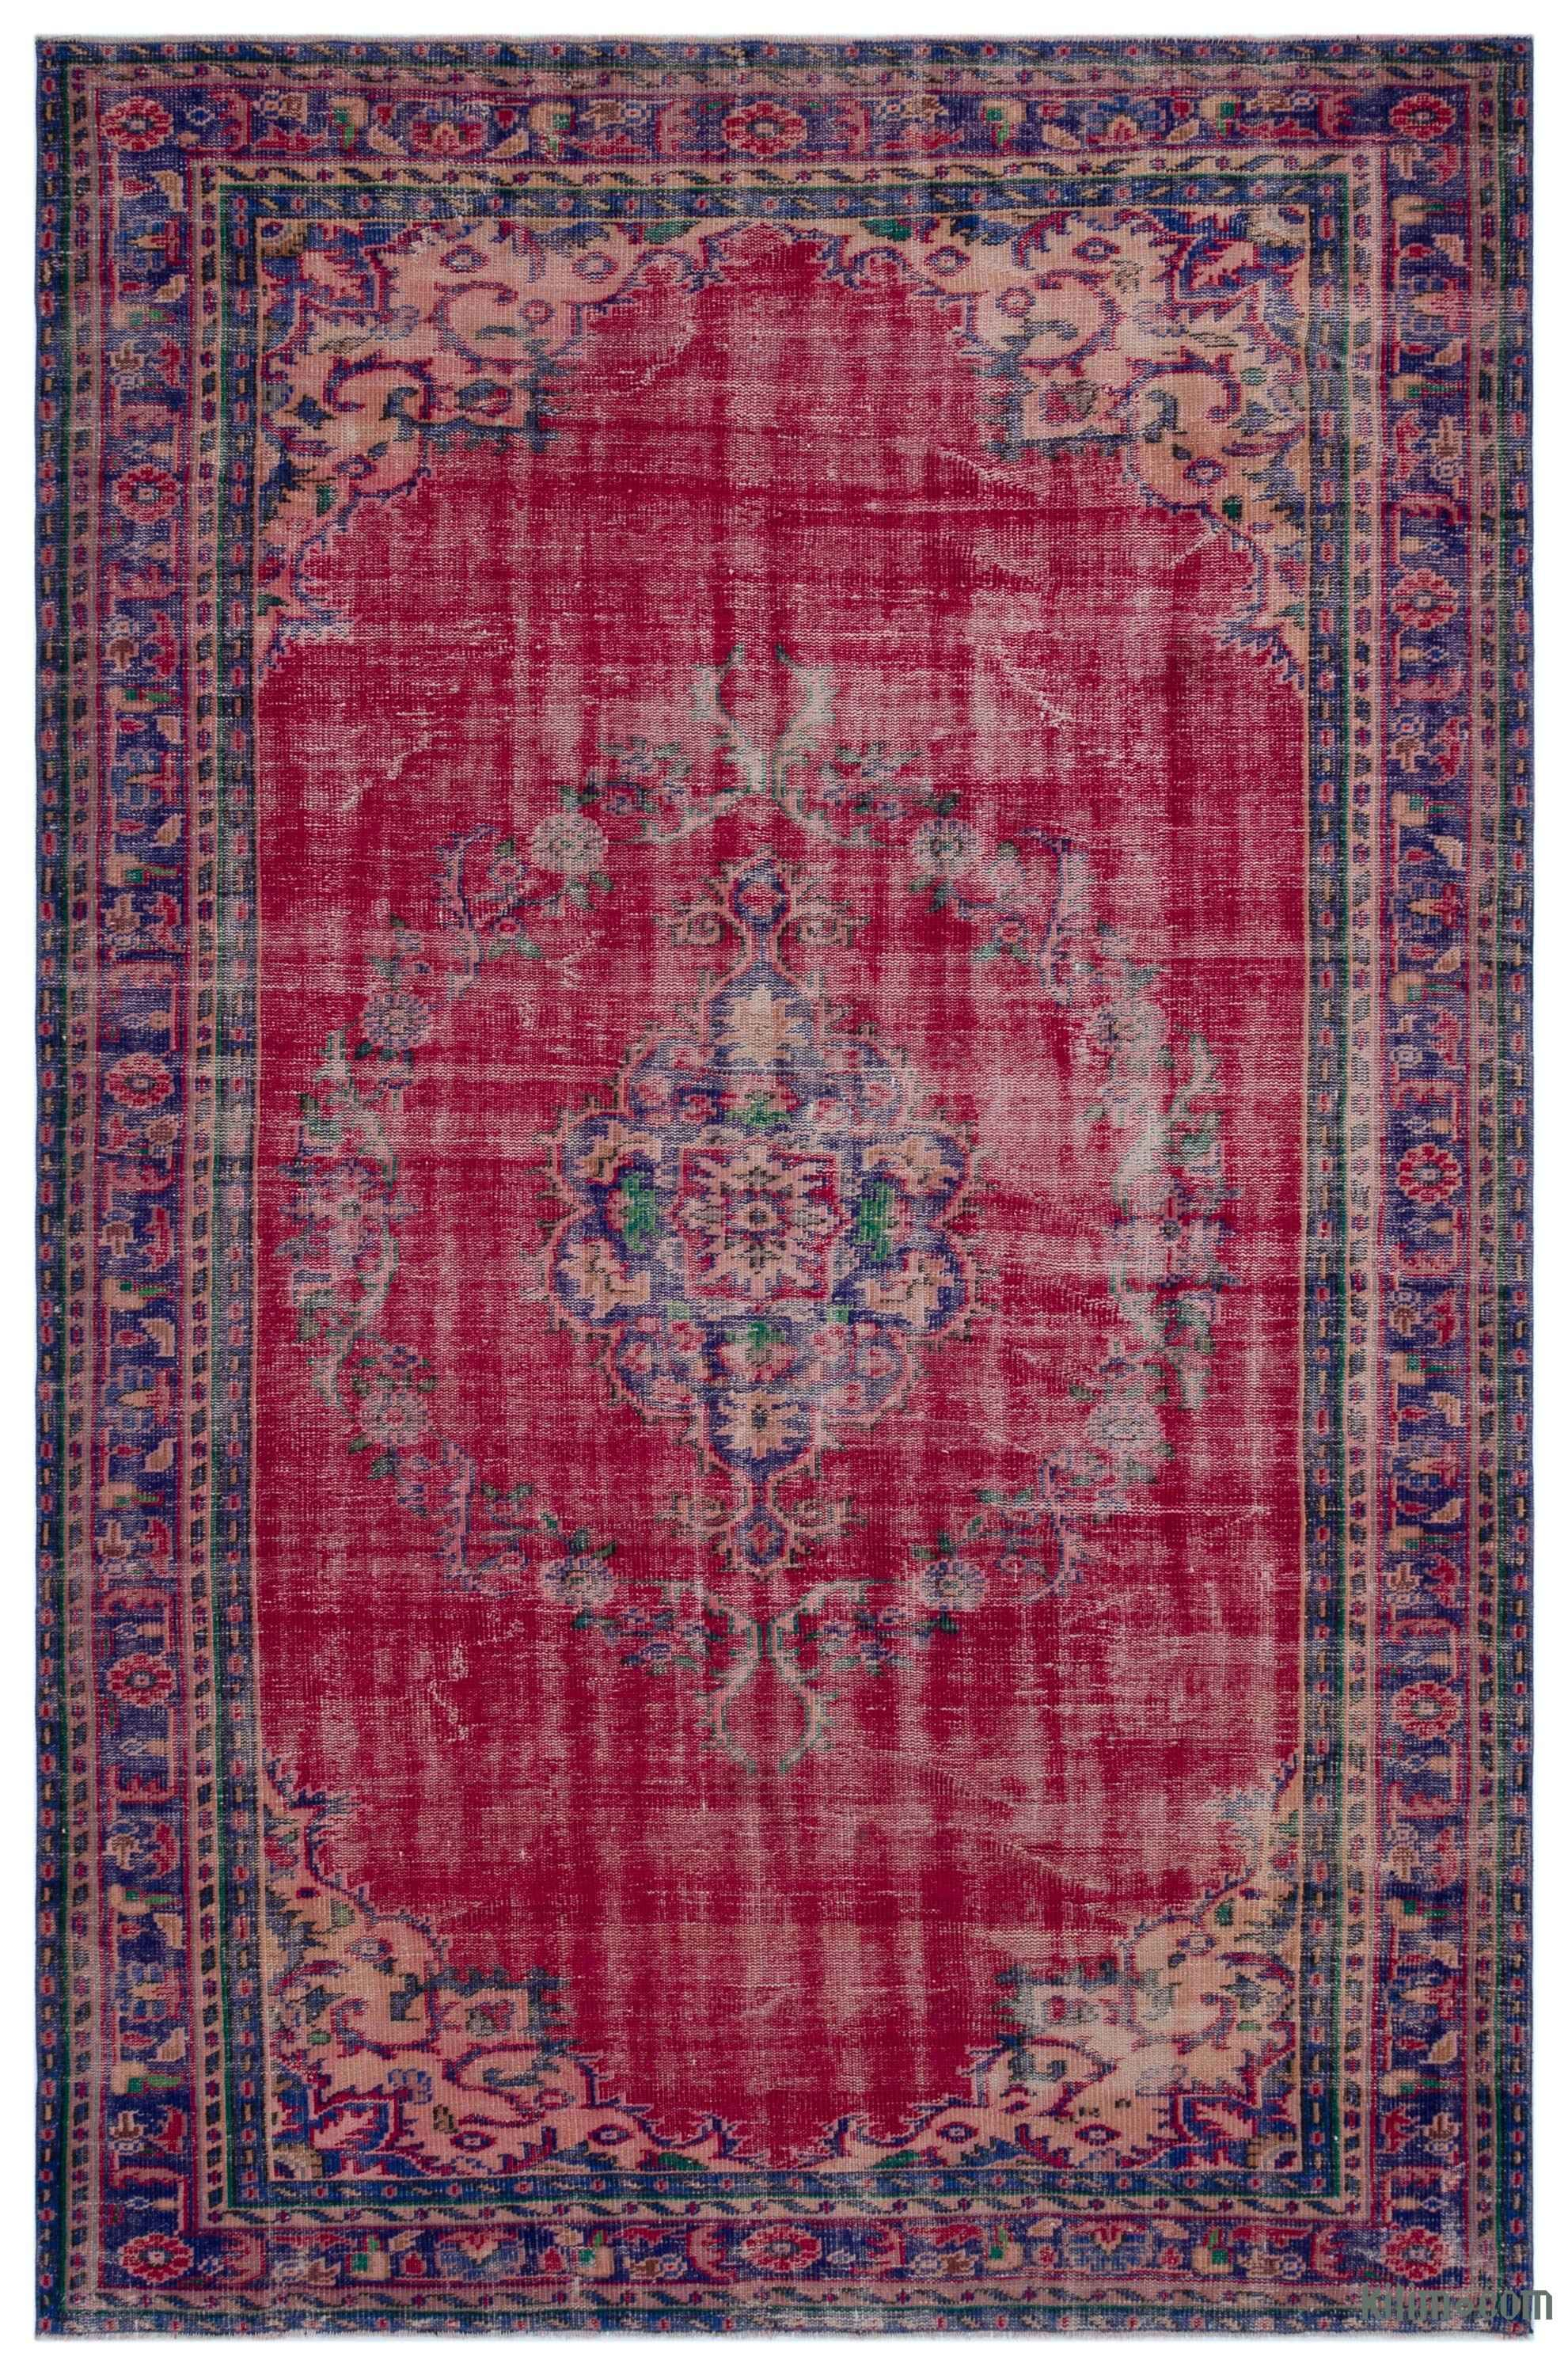 Turkish Vintage Area Rug 6 4 X 9 9 76 In X 117 In In 2020